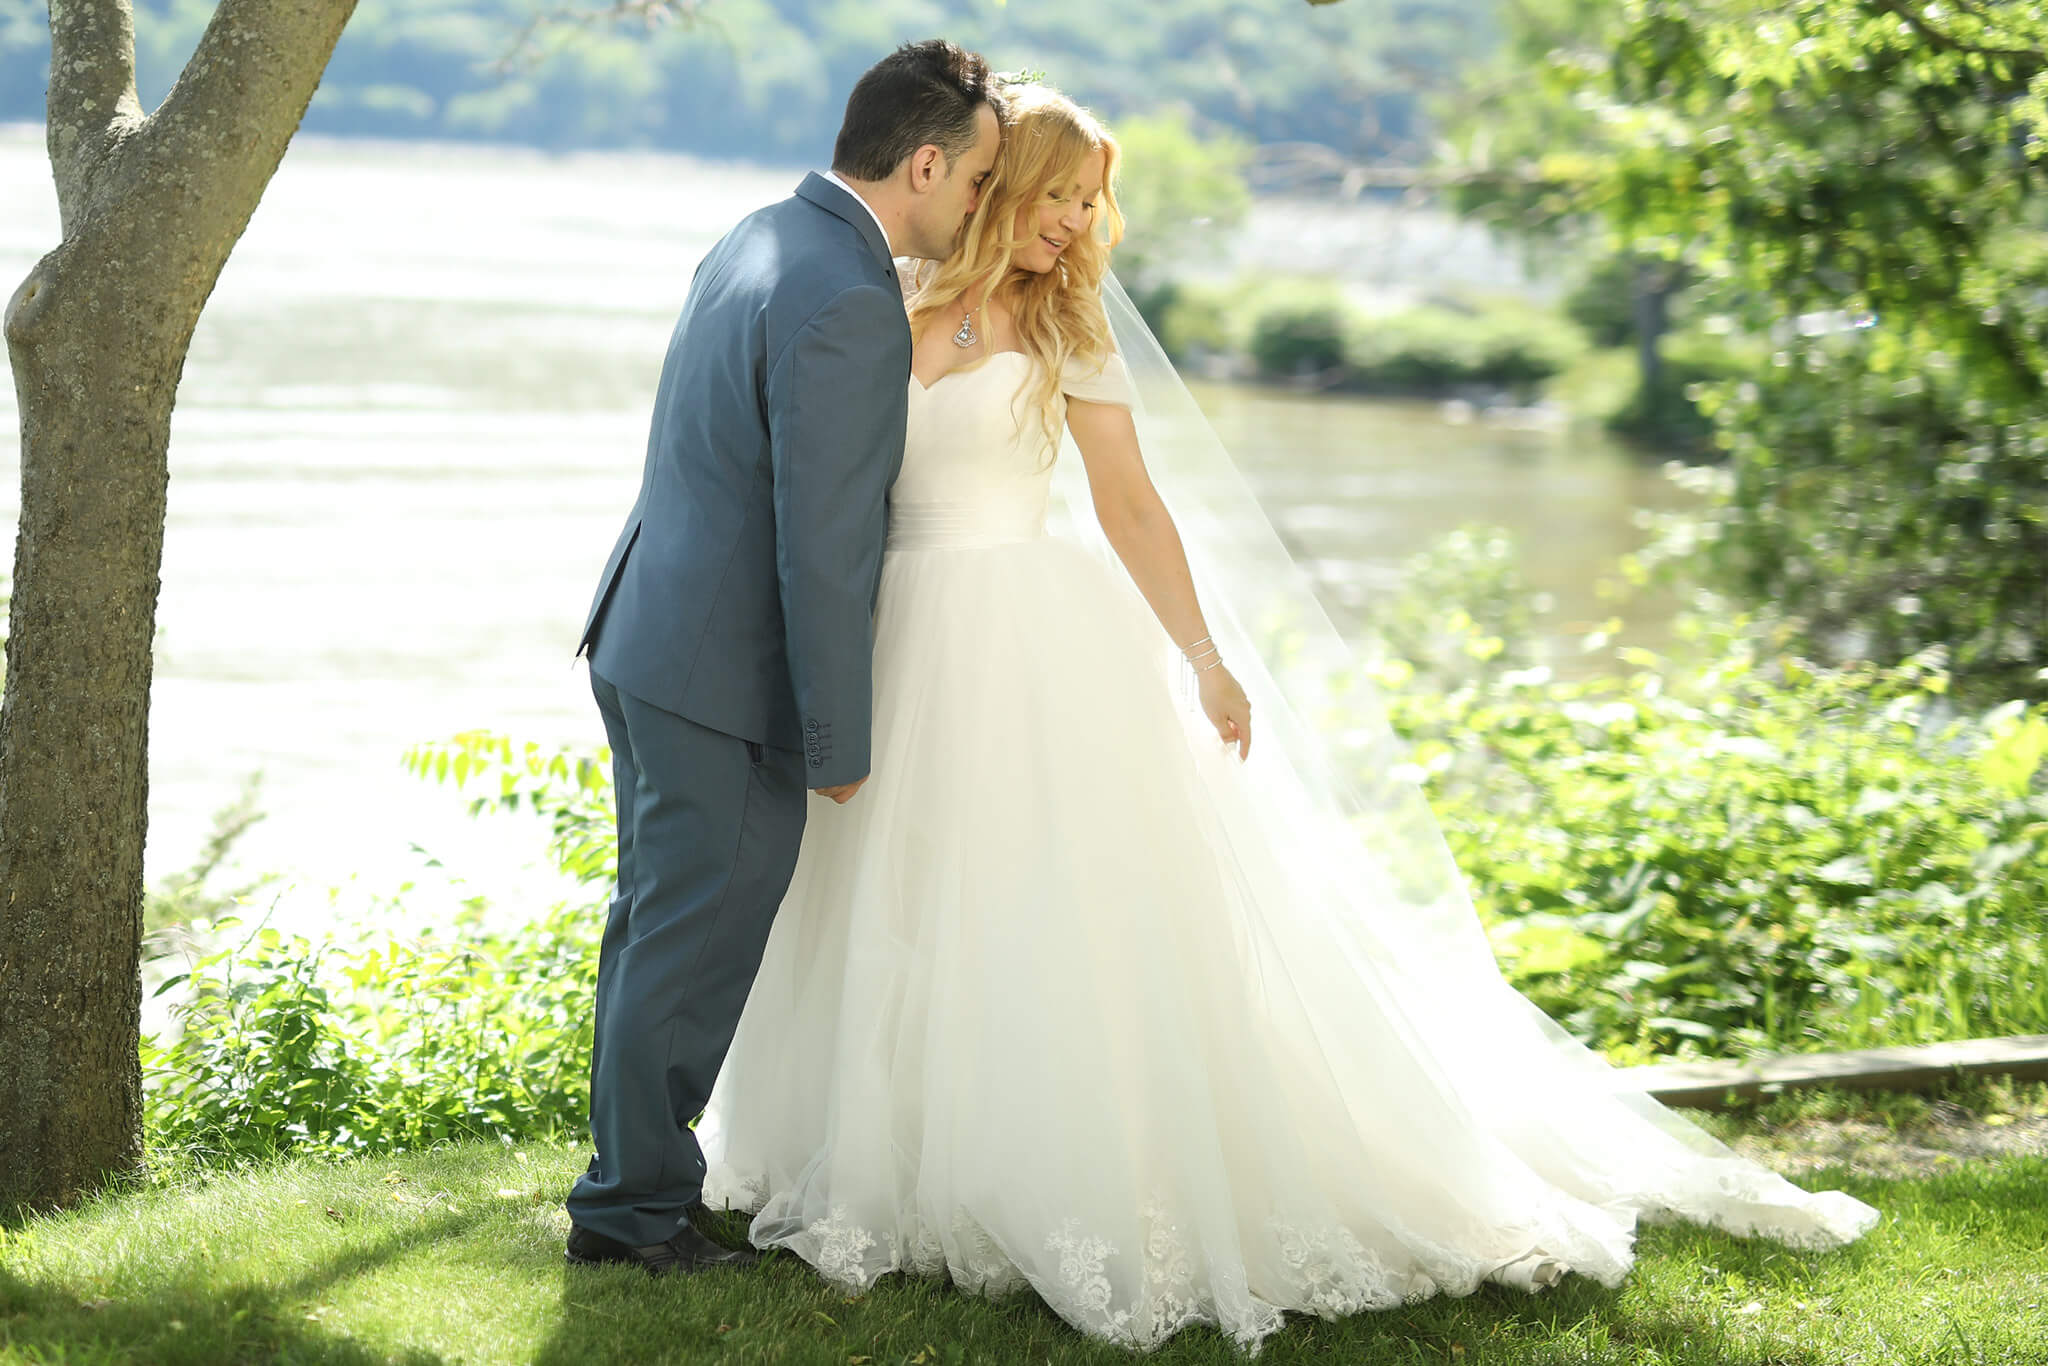 NewlyWed Glow is for real! Congratulations